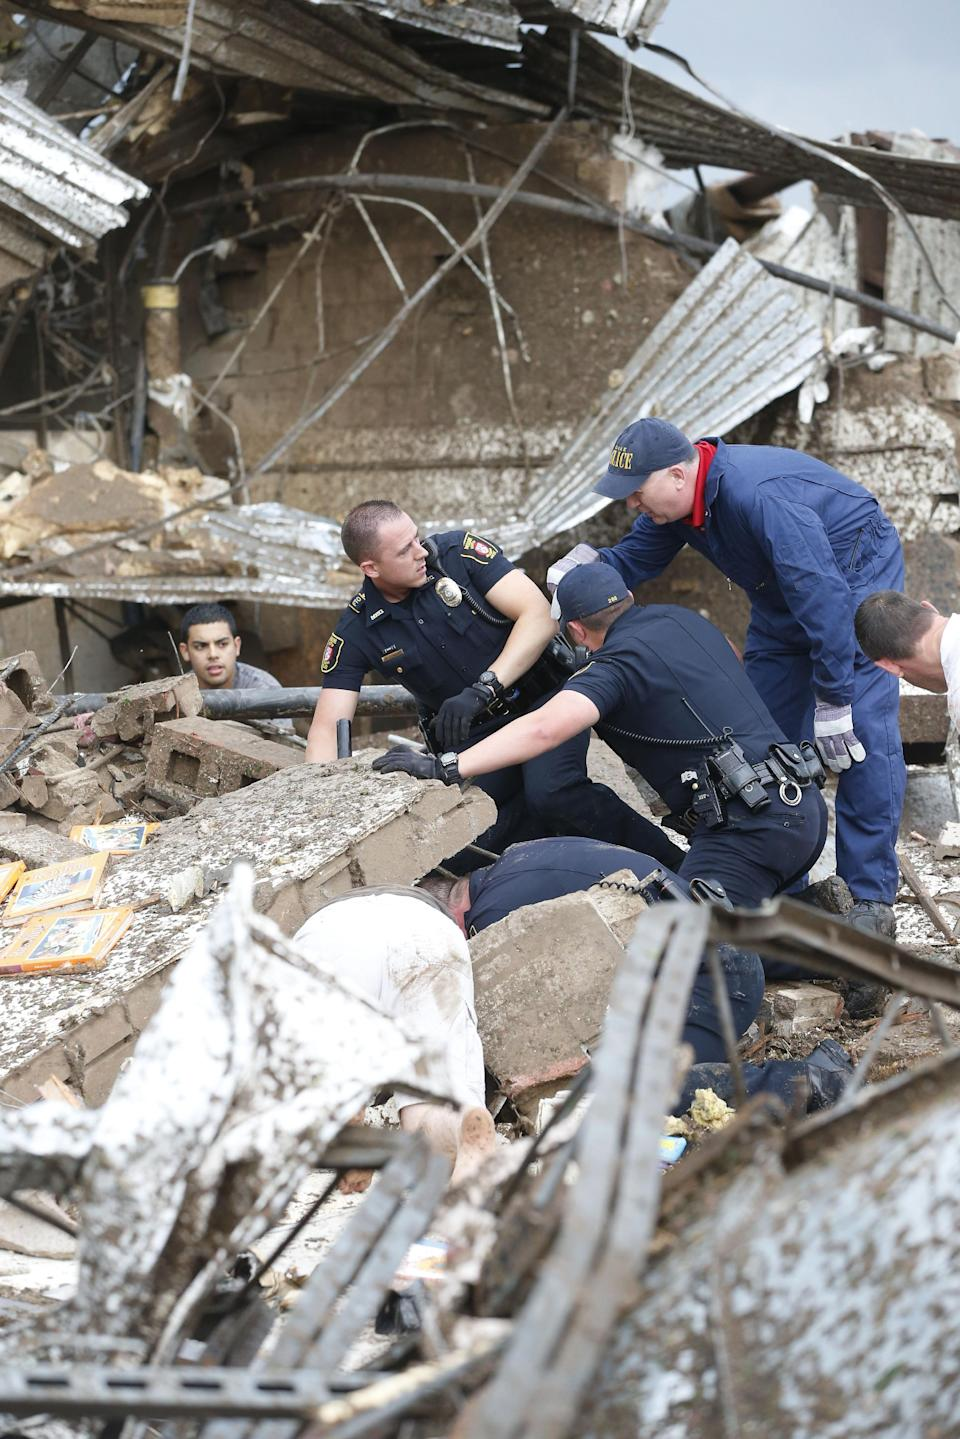 Rescue workers dig through the rubble of a collapsed wall at the Plaza Tower Elementary School to free trapped students in Moore, Okla., following a tornado Monday, May 20, 2013. (AP Photo Sue Ogrocki)